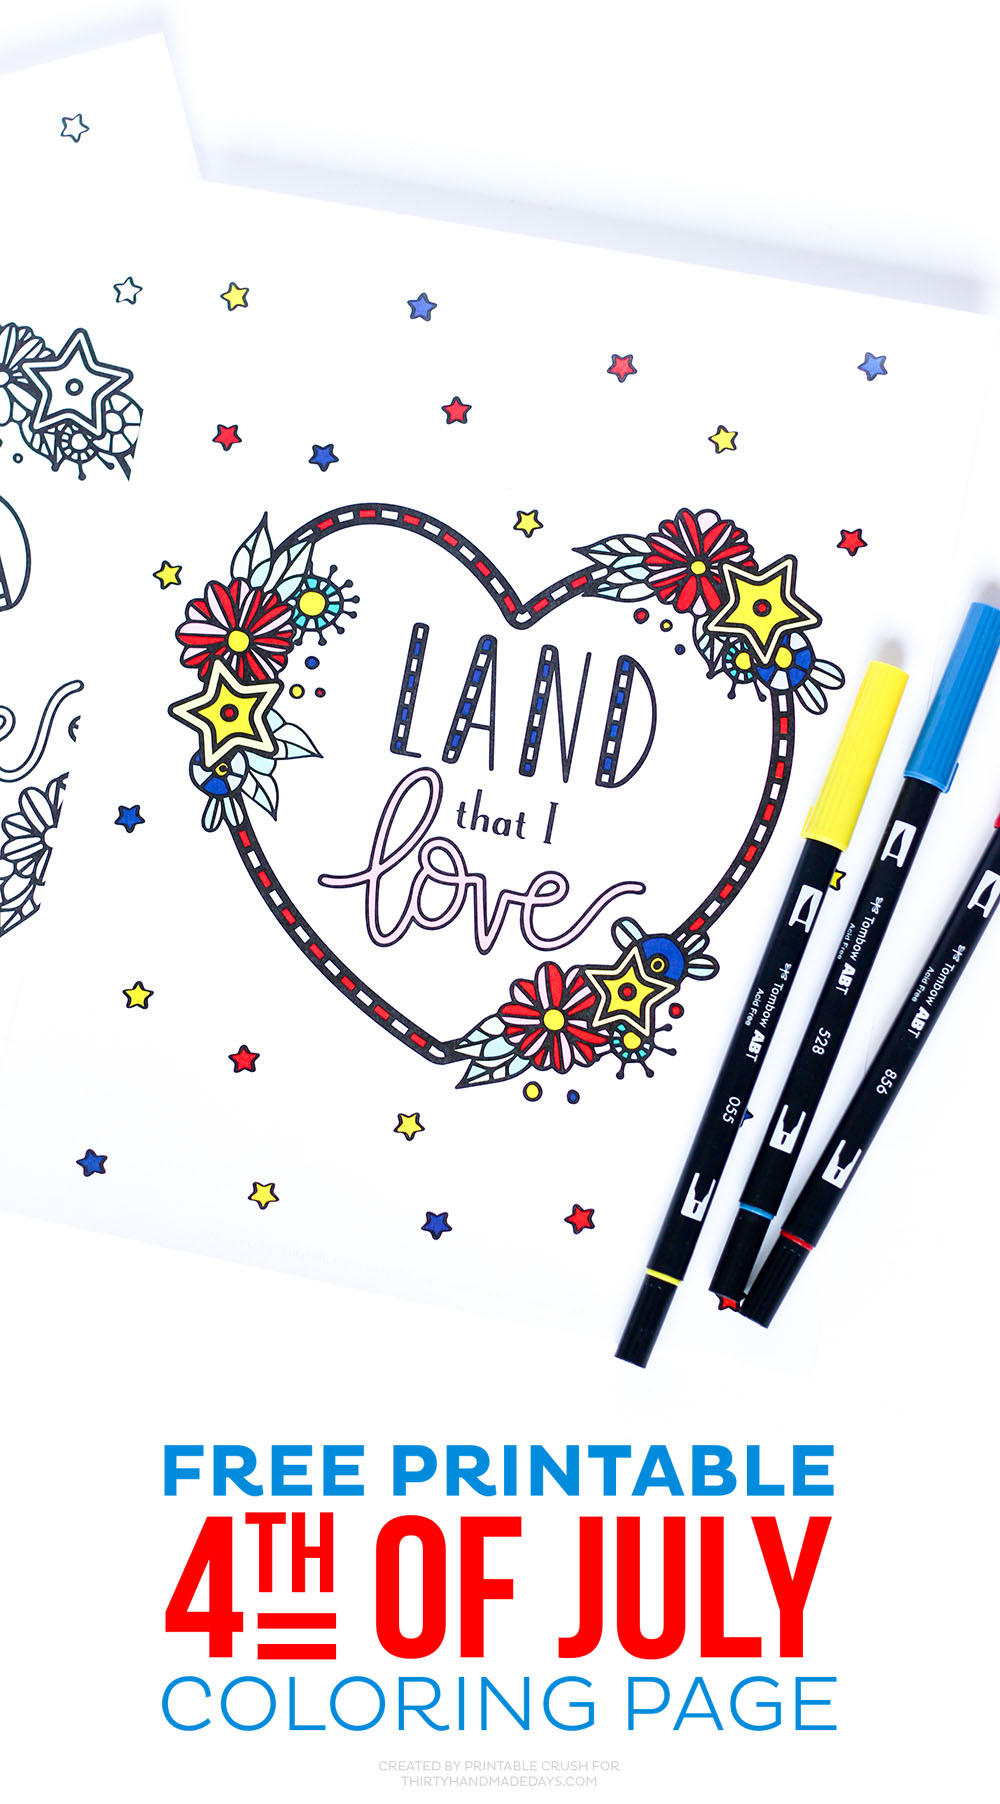 Free Printable Fourth of July Coloring Page